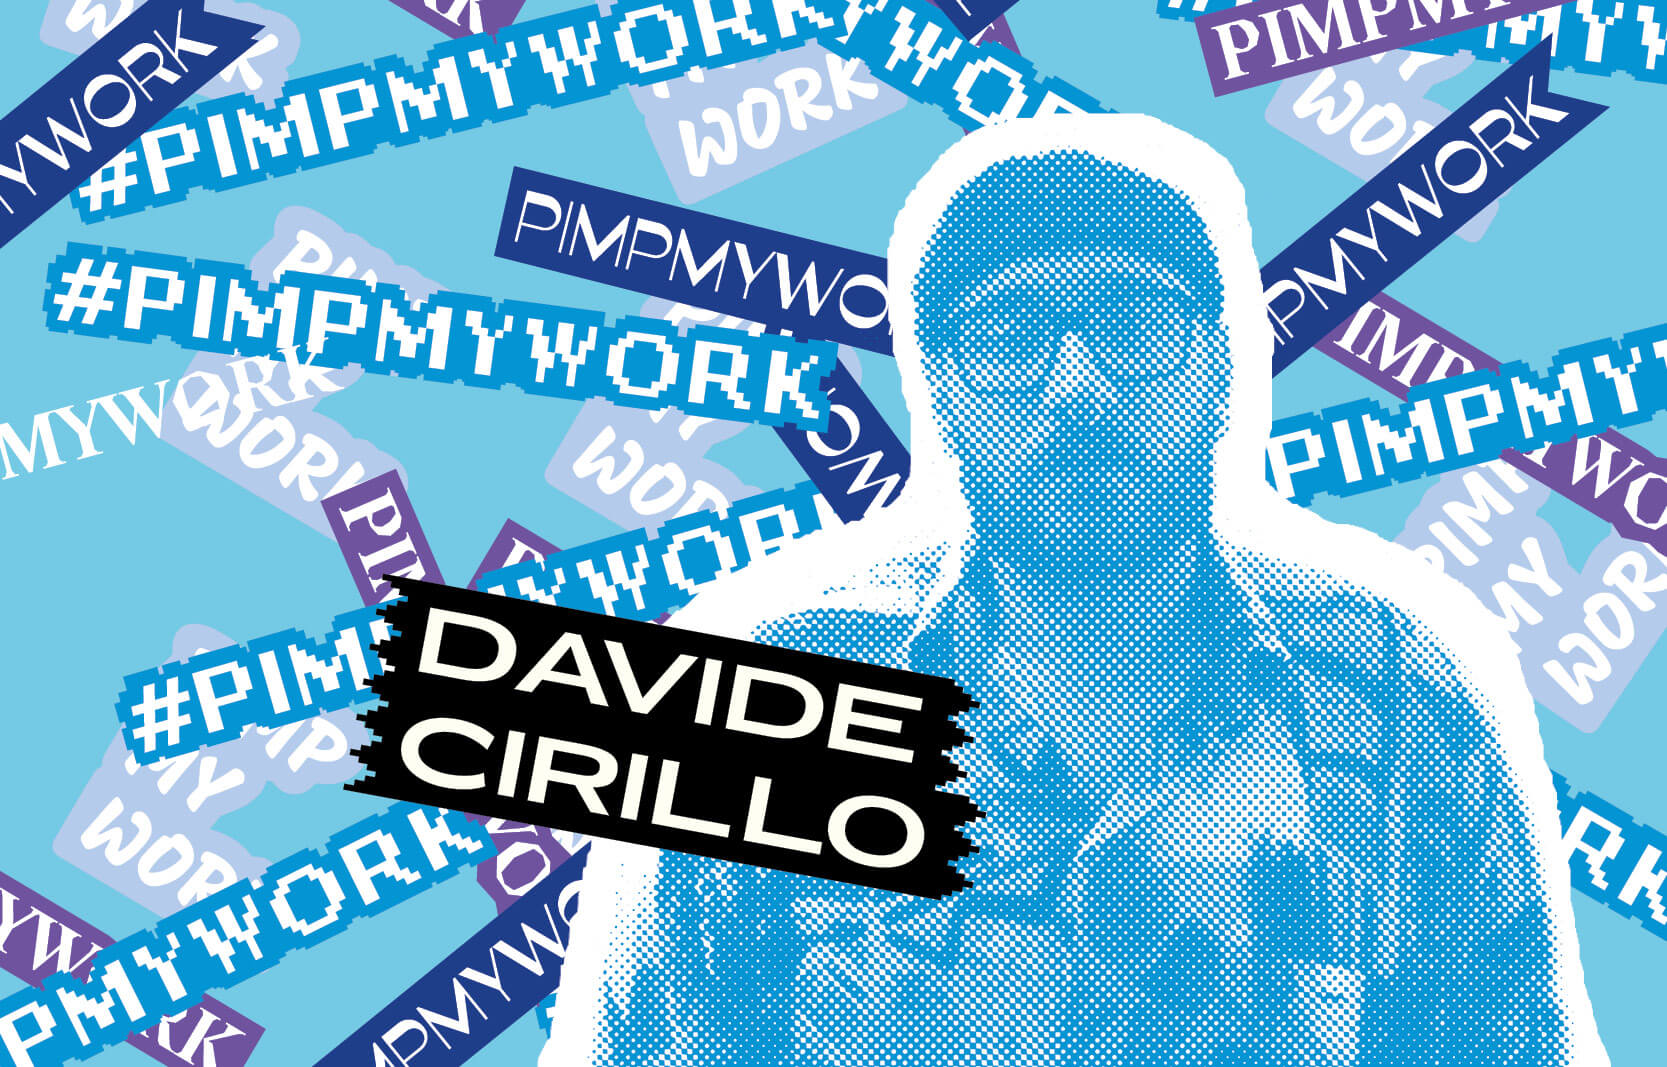 Davide Cirillo